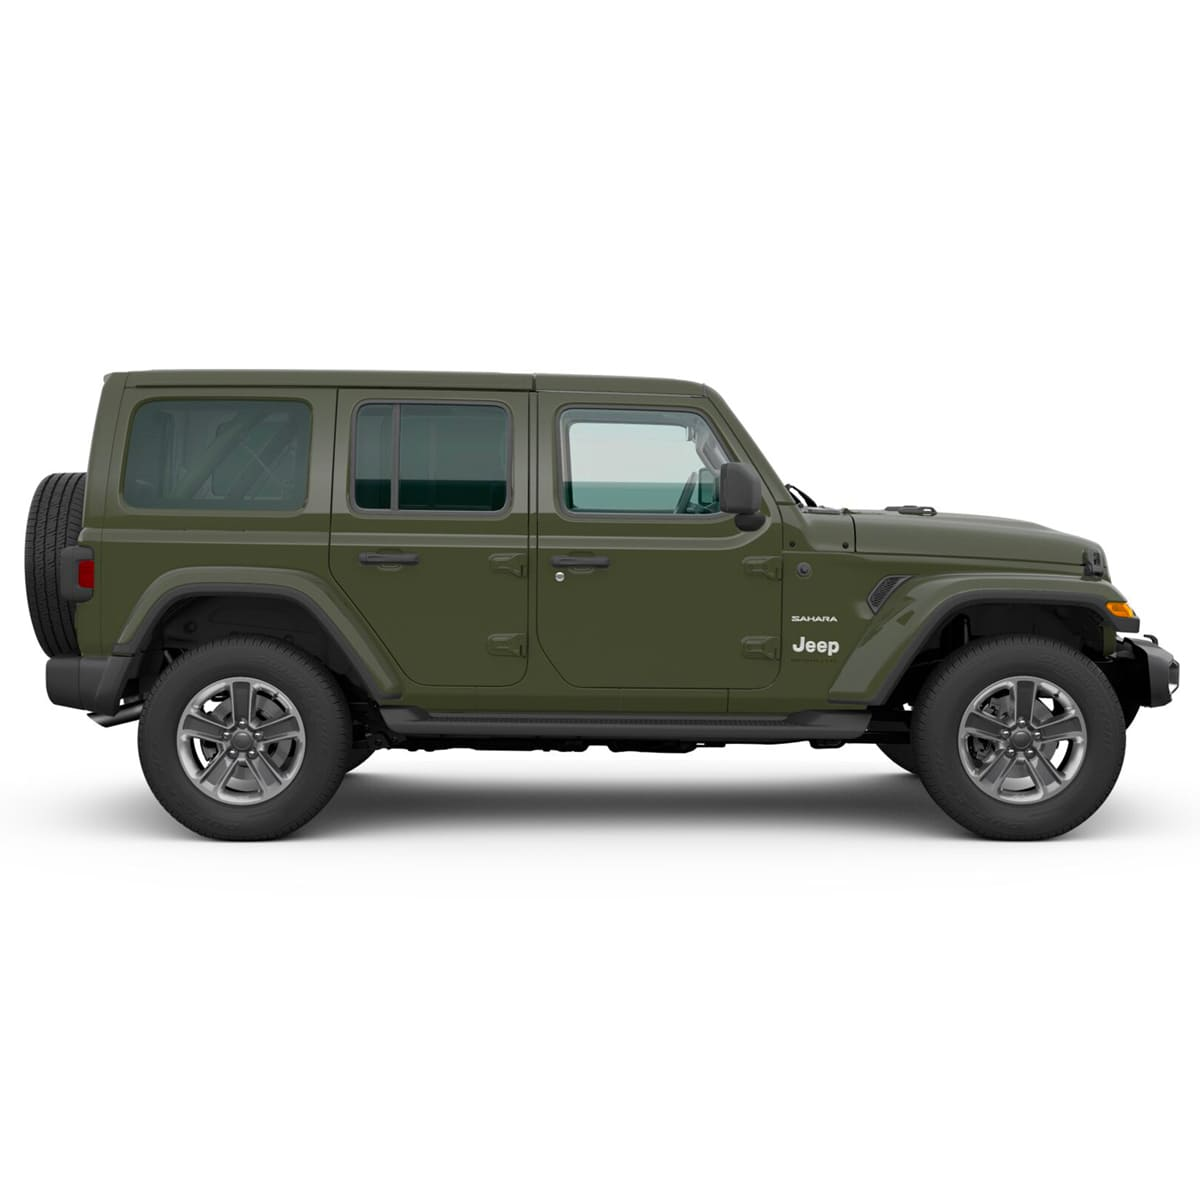 Jeep ALL NEW WRANGLER UNLIMITED SAHARA 4X4 3.6L AT SARGE GREEN Exterior 2